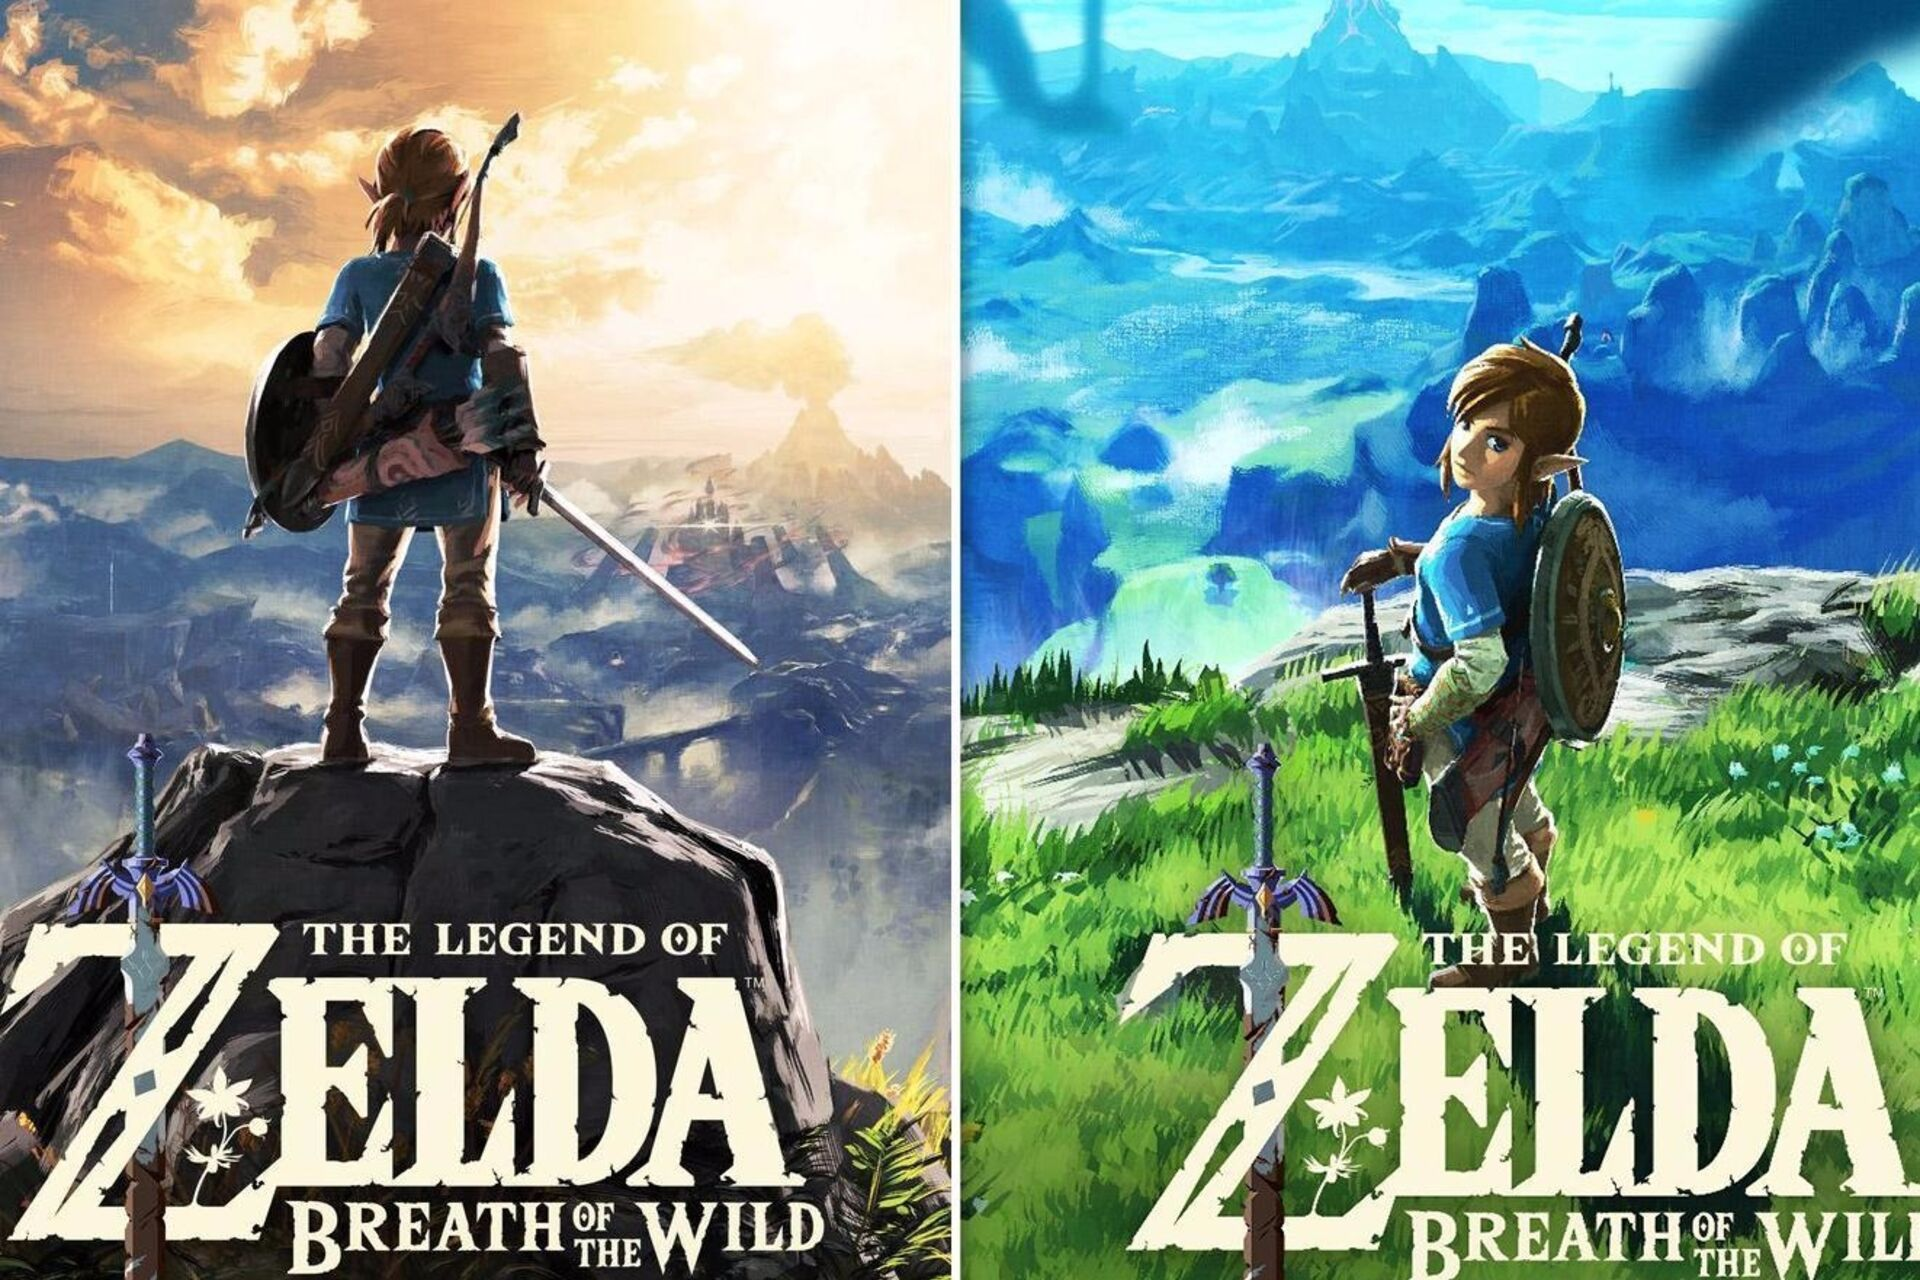 Let's compare and contrast the US and European Legend of Zelda ...